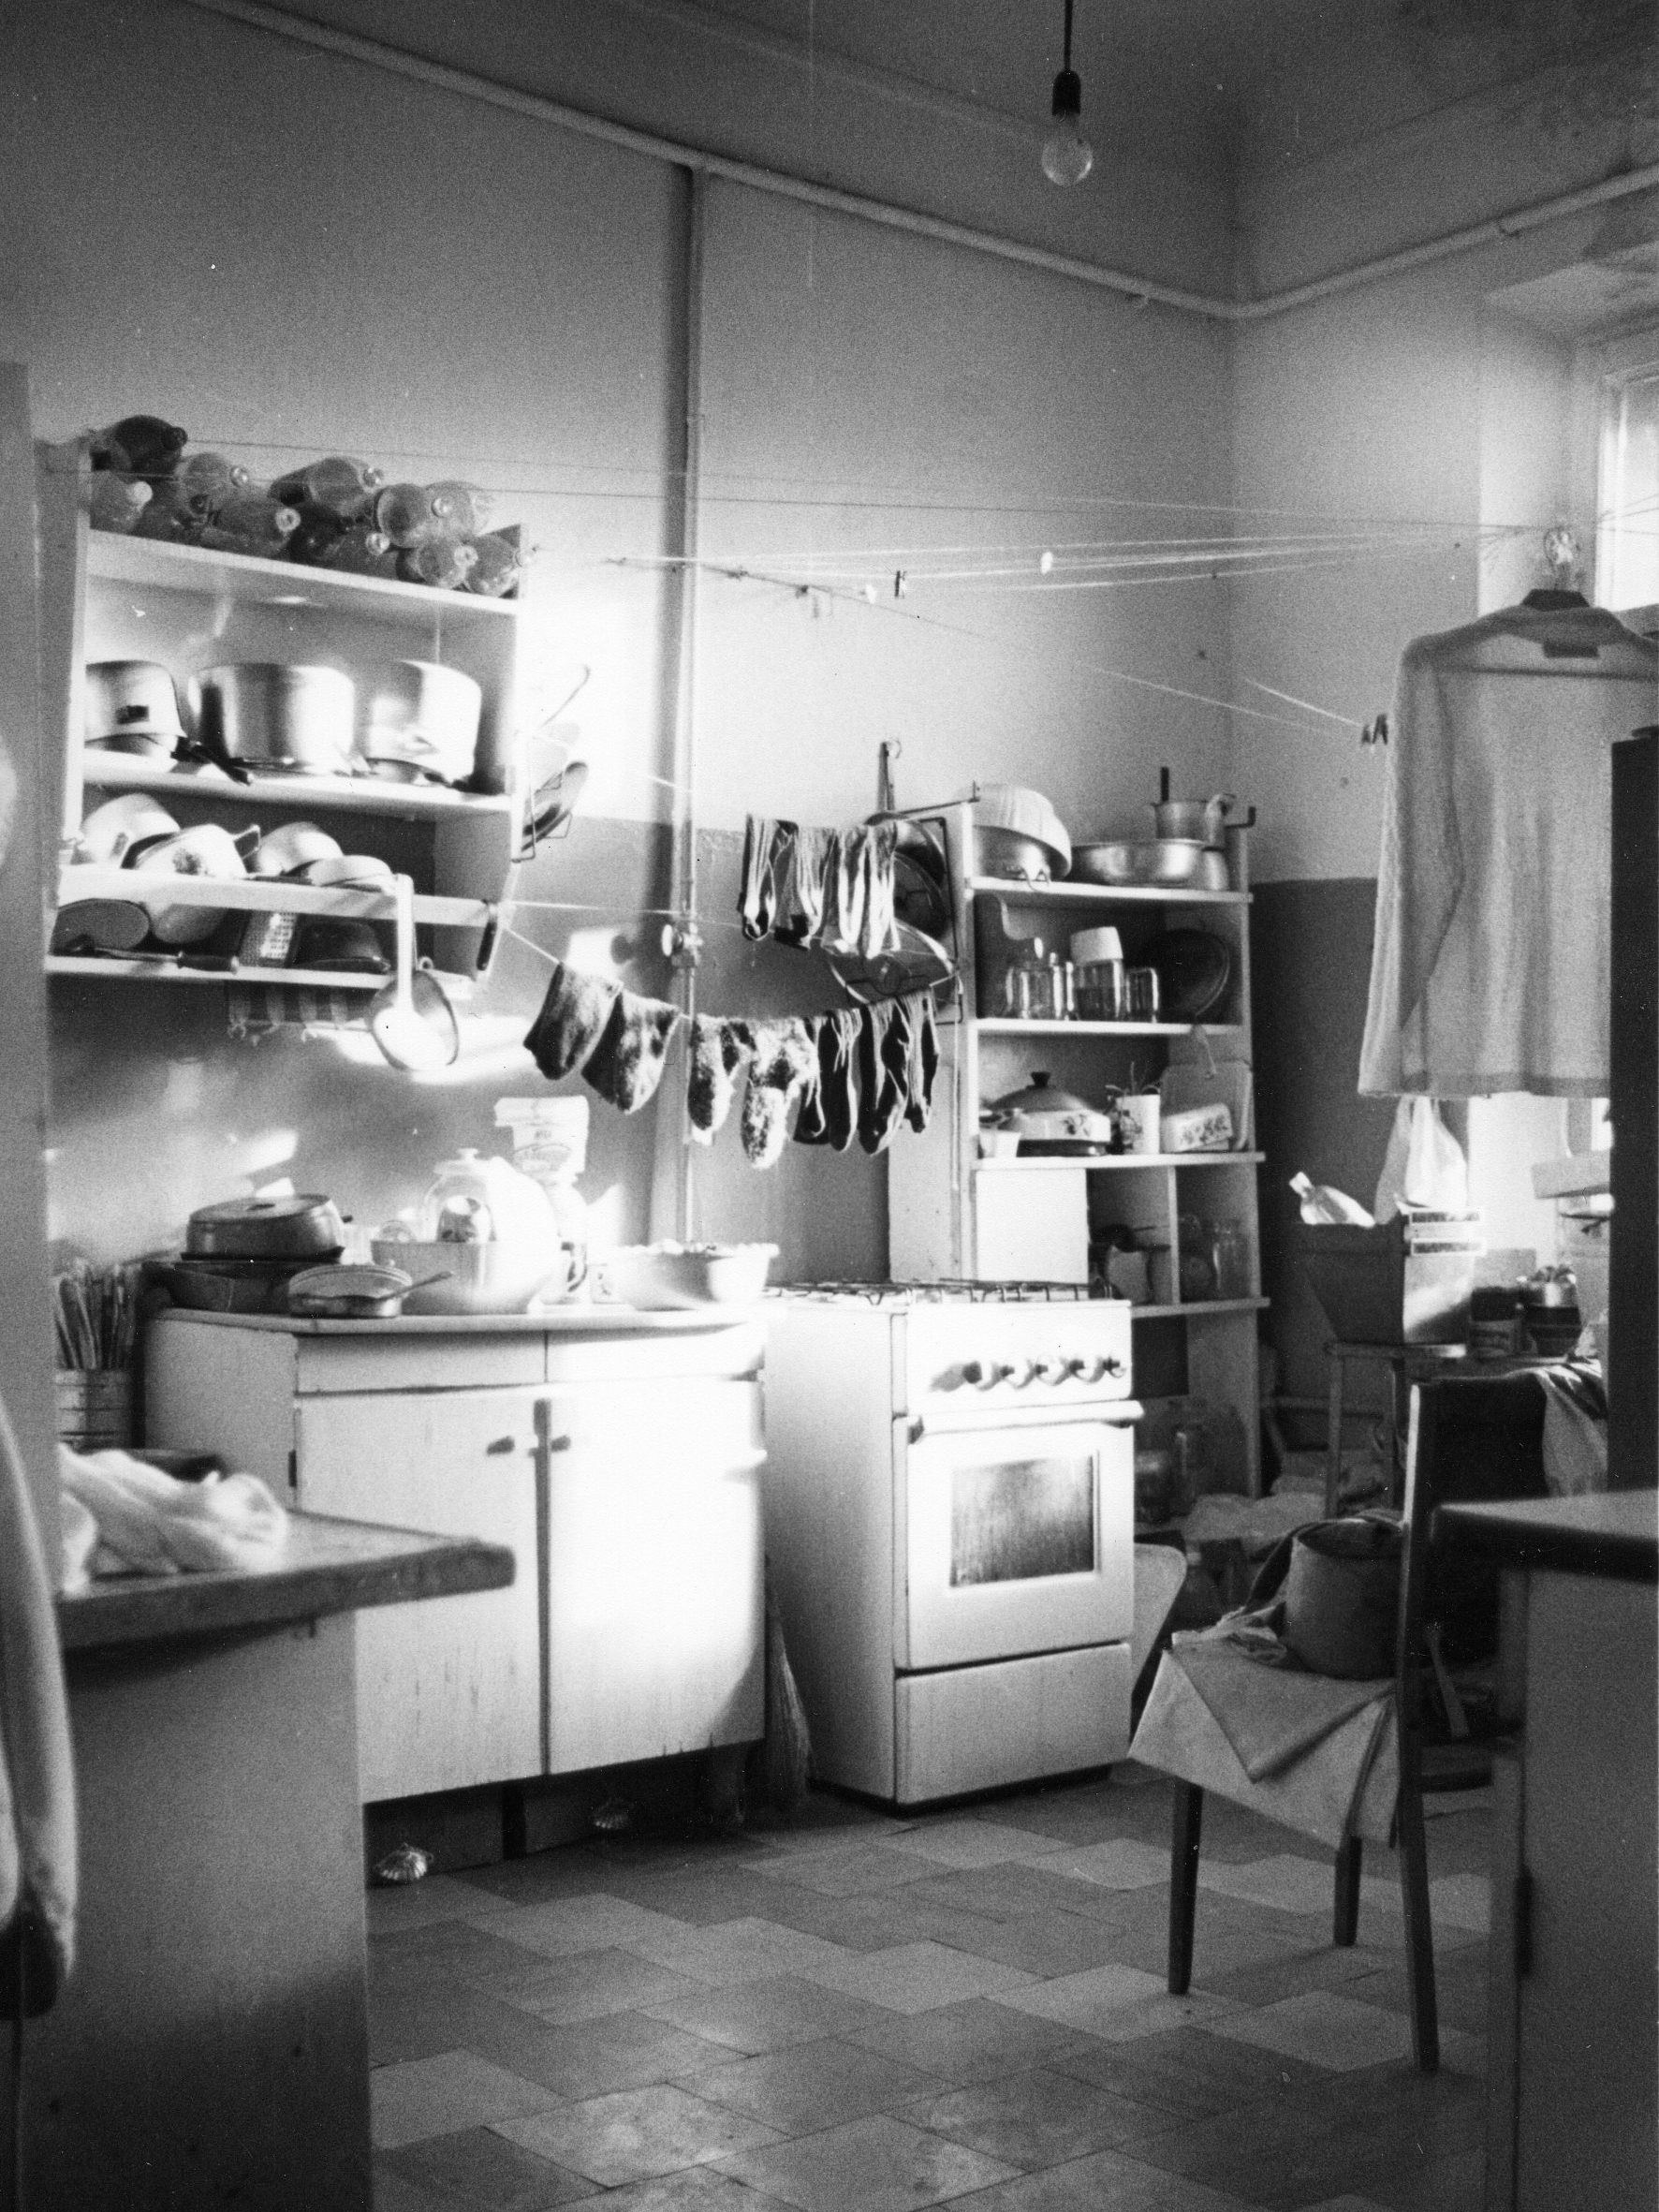 Britische Küche Berlin How Russia 39s Shared Kitchens Helped Shape Soviet Politics